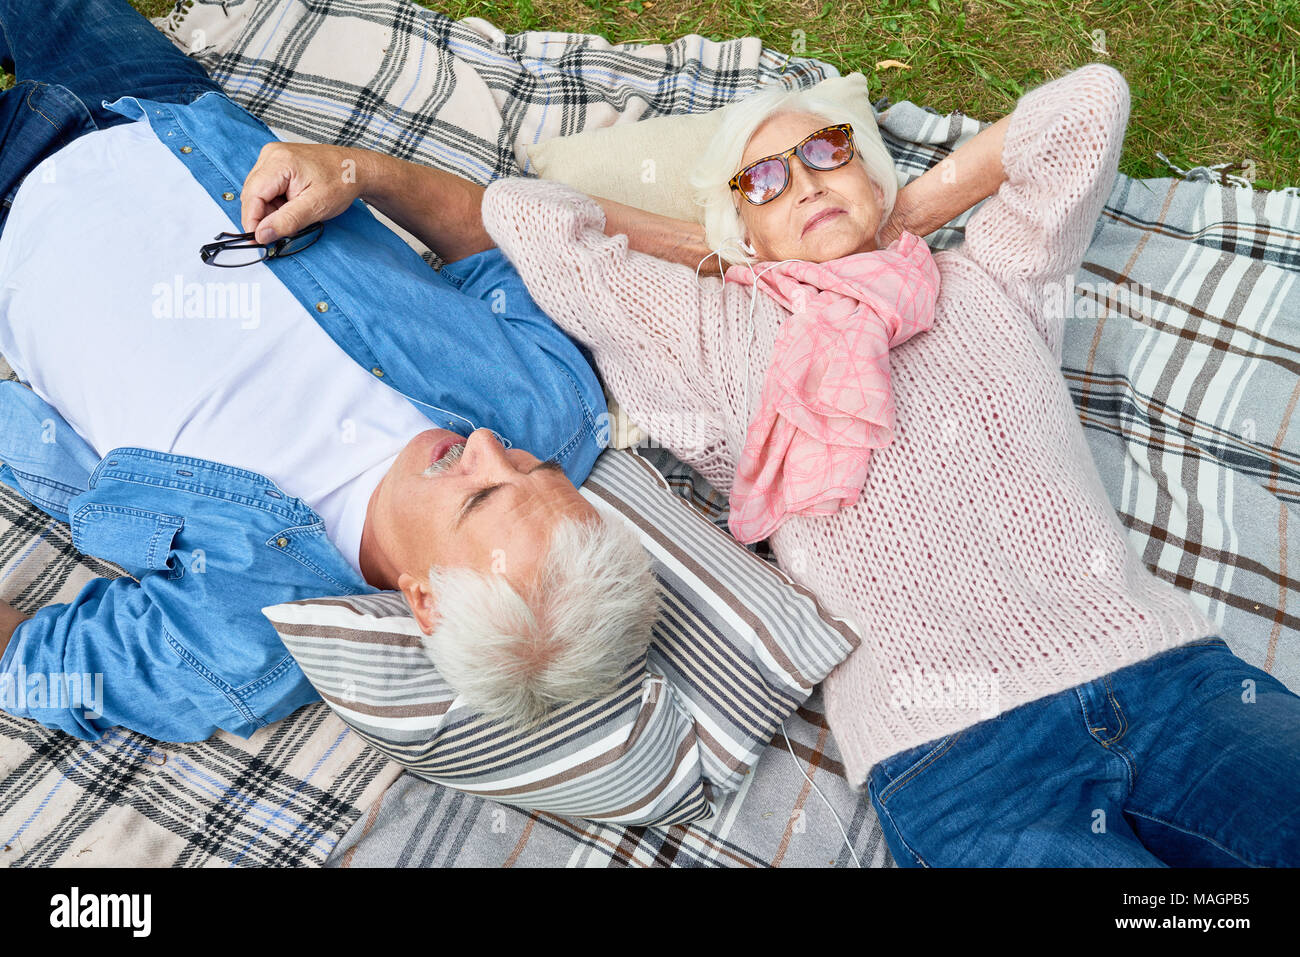 Senior Woman Listening to Music at Picnic - Stock Image